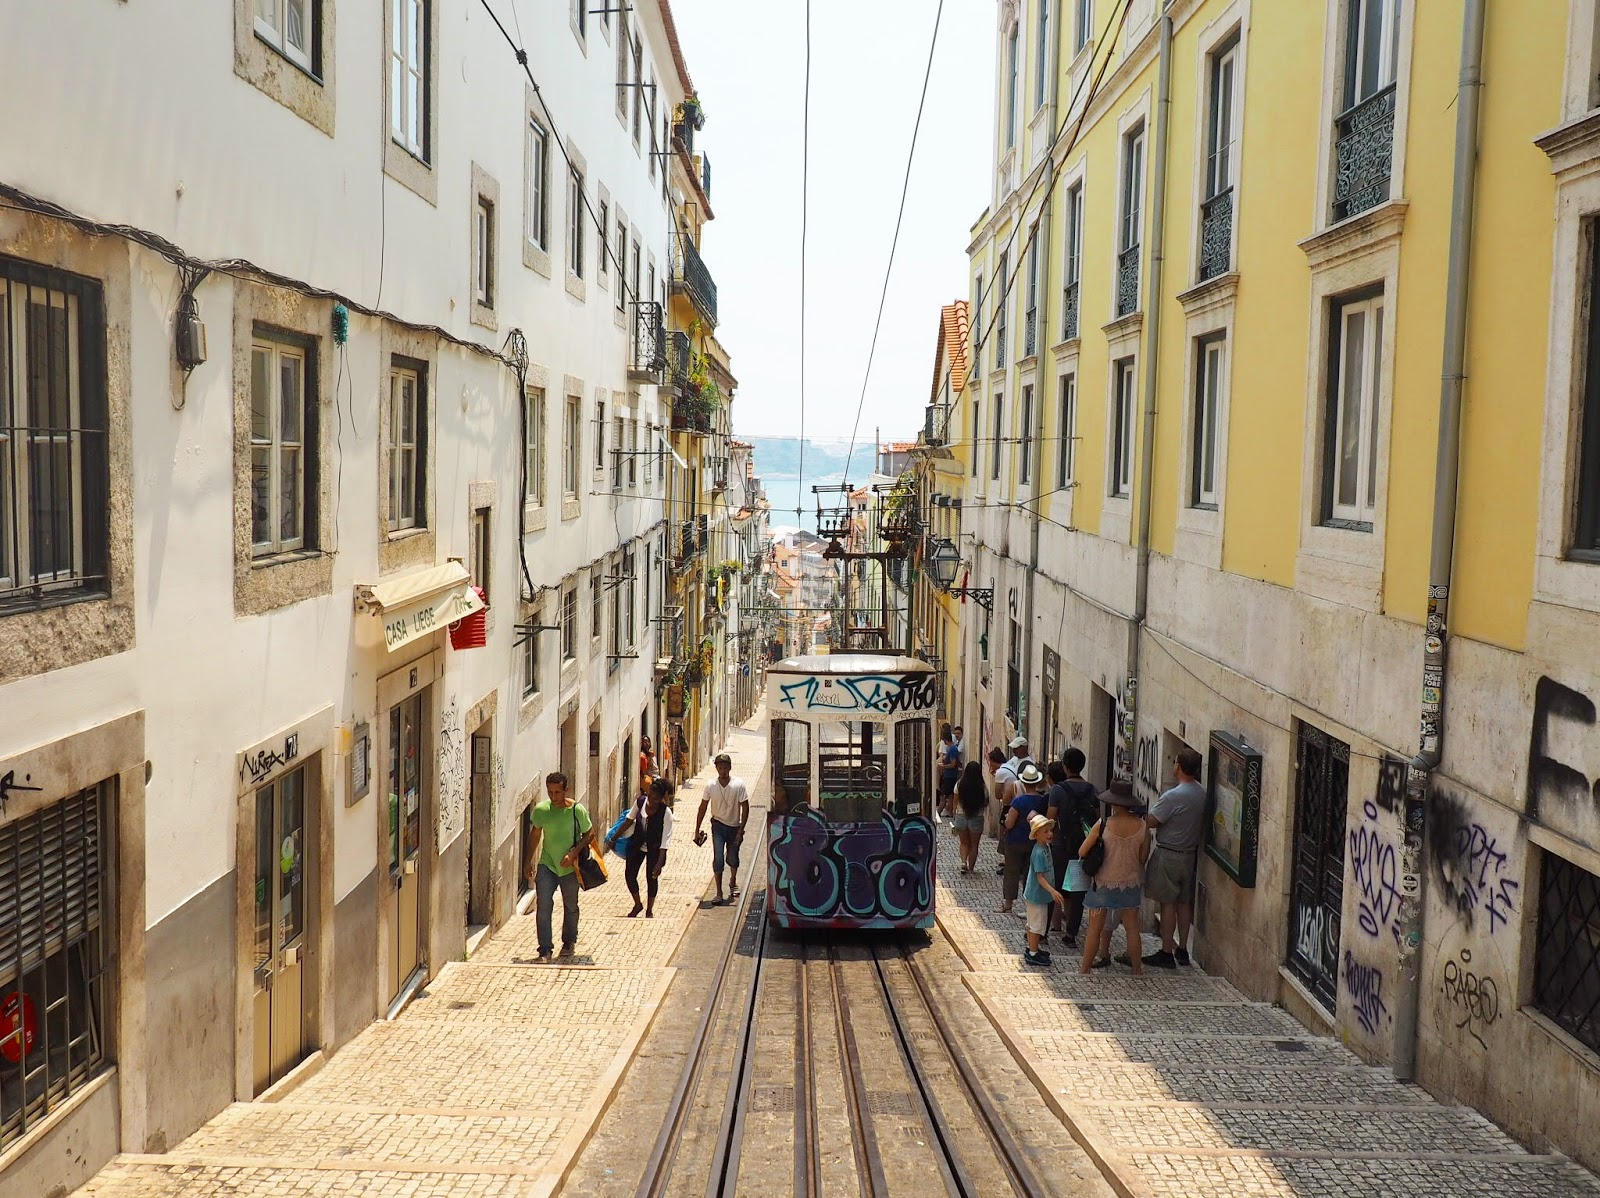 lisbon portugal travel guide tip recommends airbnb cascais belem alfama elevator castle holiday sun tram beach city break pasteis de nata time out market food bars